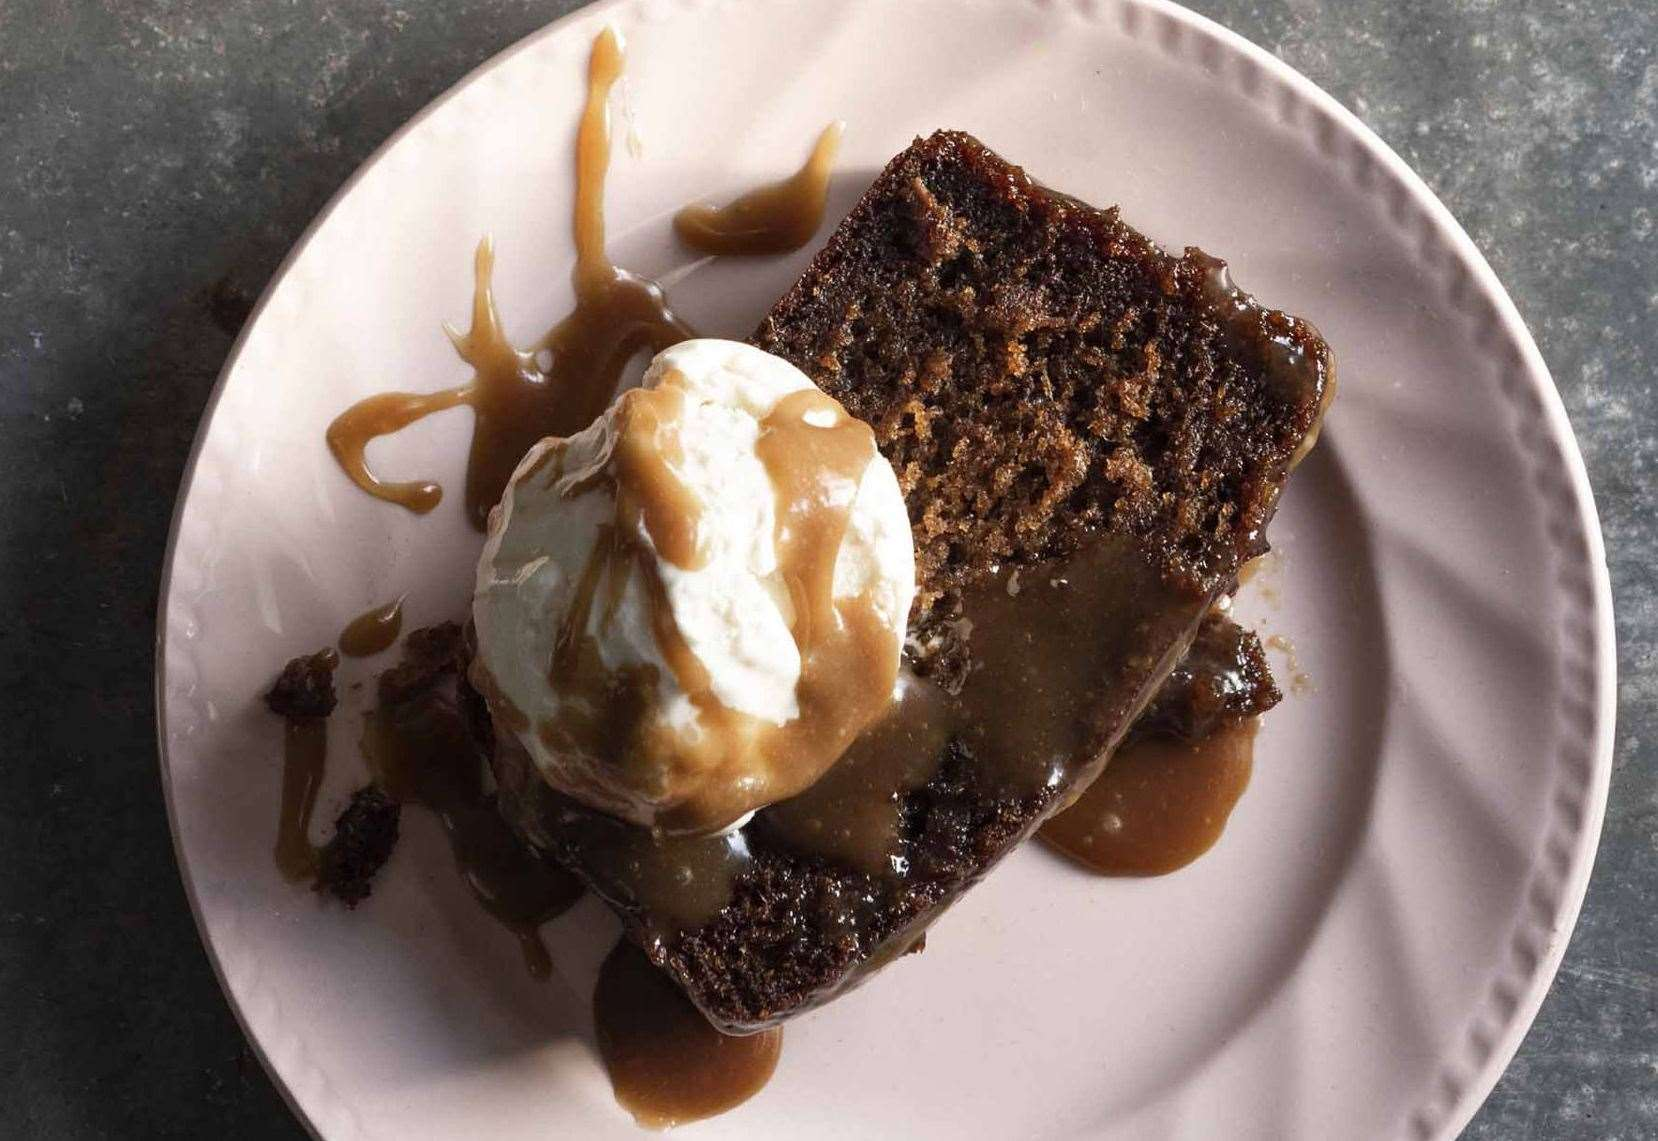 This sticky toffee recipe from 100 Dirty Dishes is the perfect end to any meal